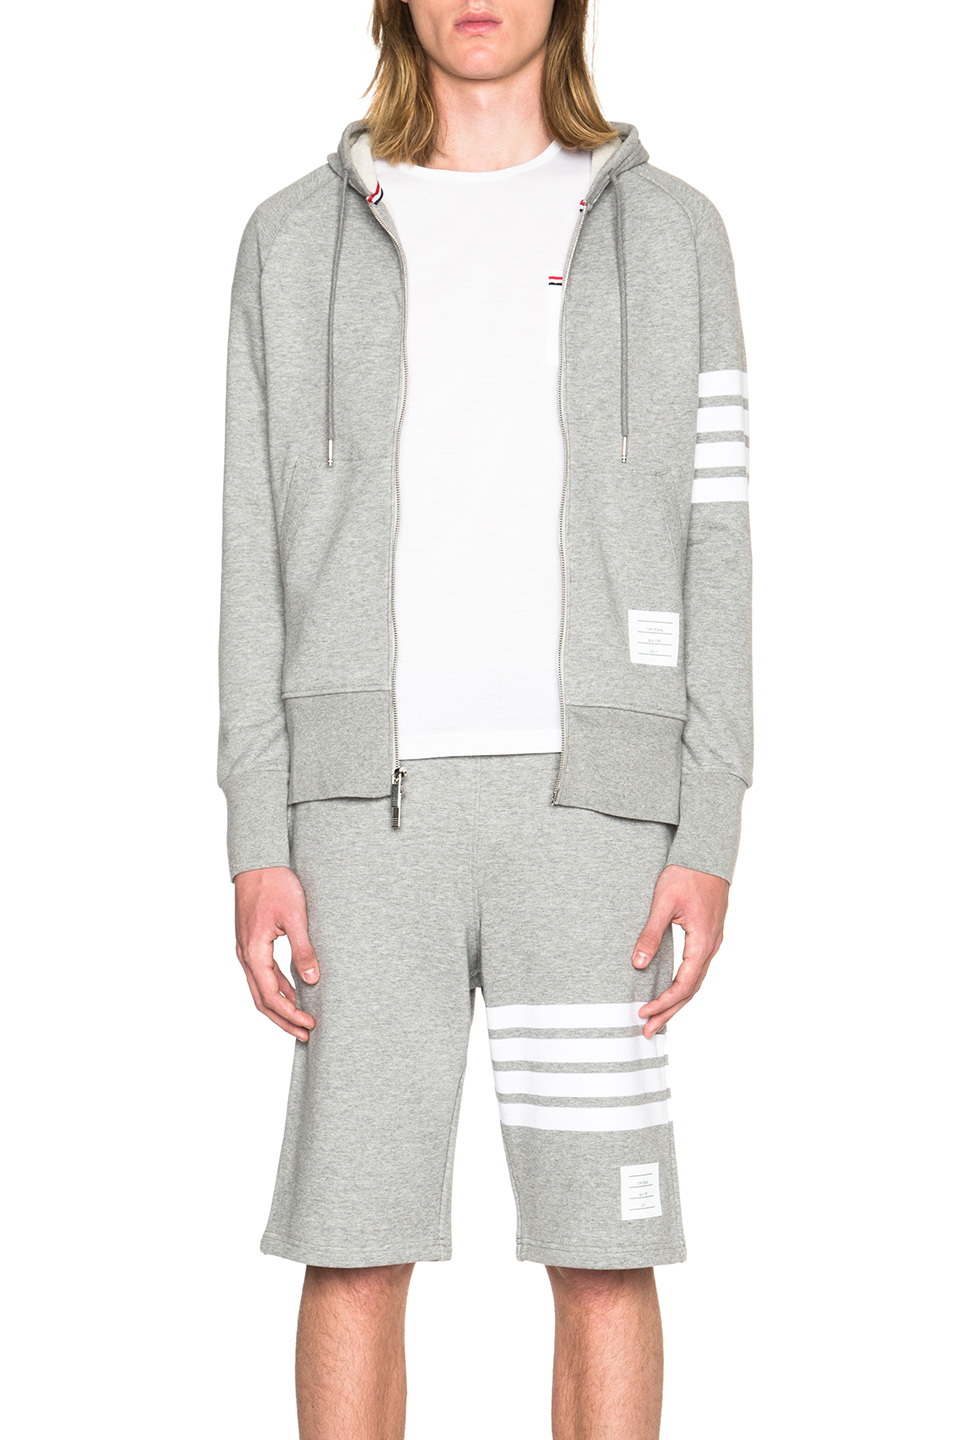 Thom Browne Engineered 4 Bar Zip Hoodie in Gray